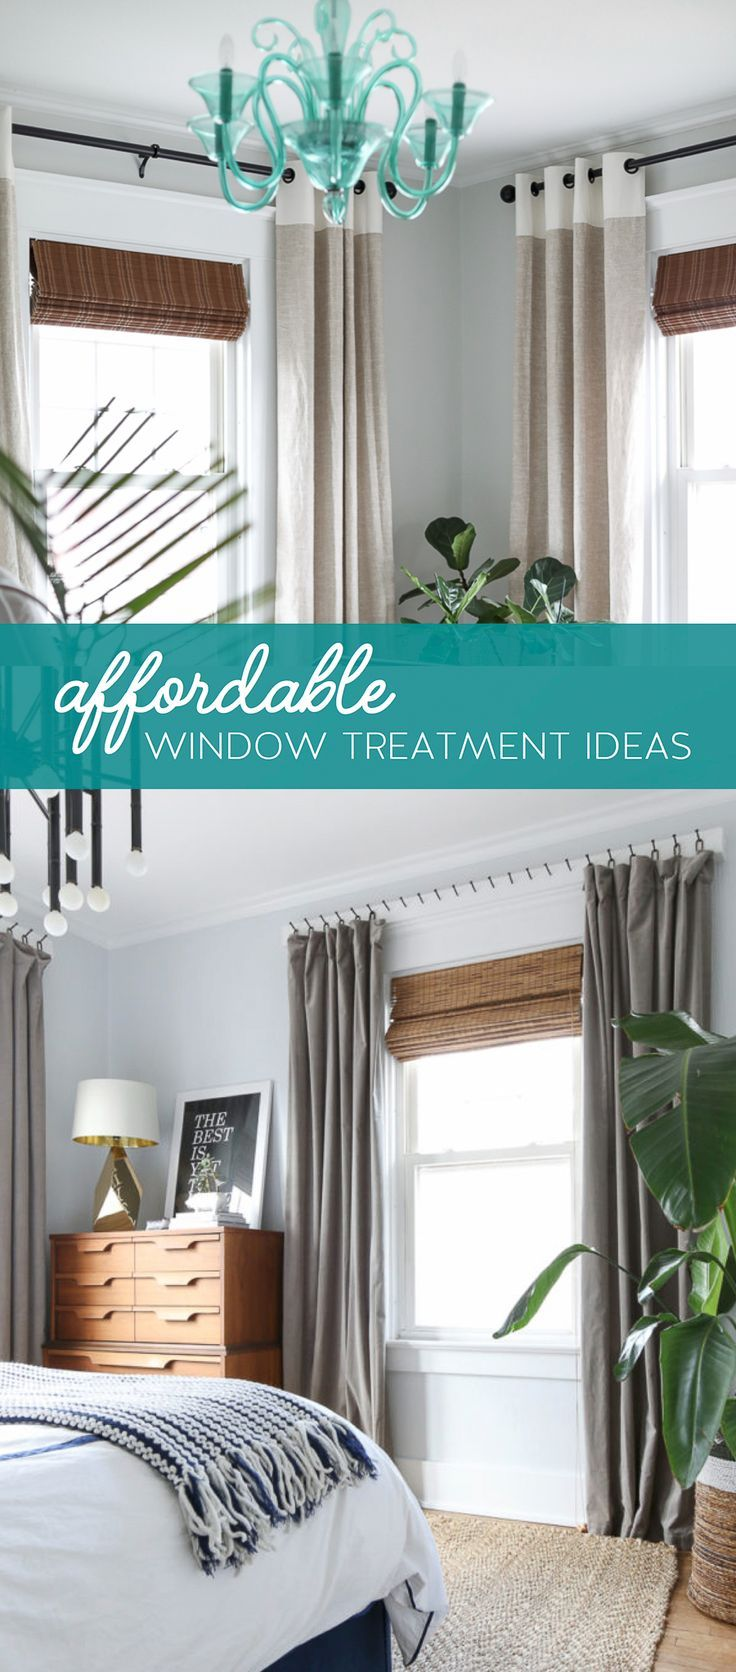 Window covering ideas  affordable window treatments  curtains drapes window treatment